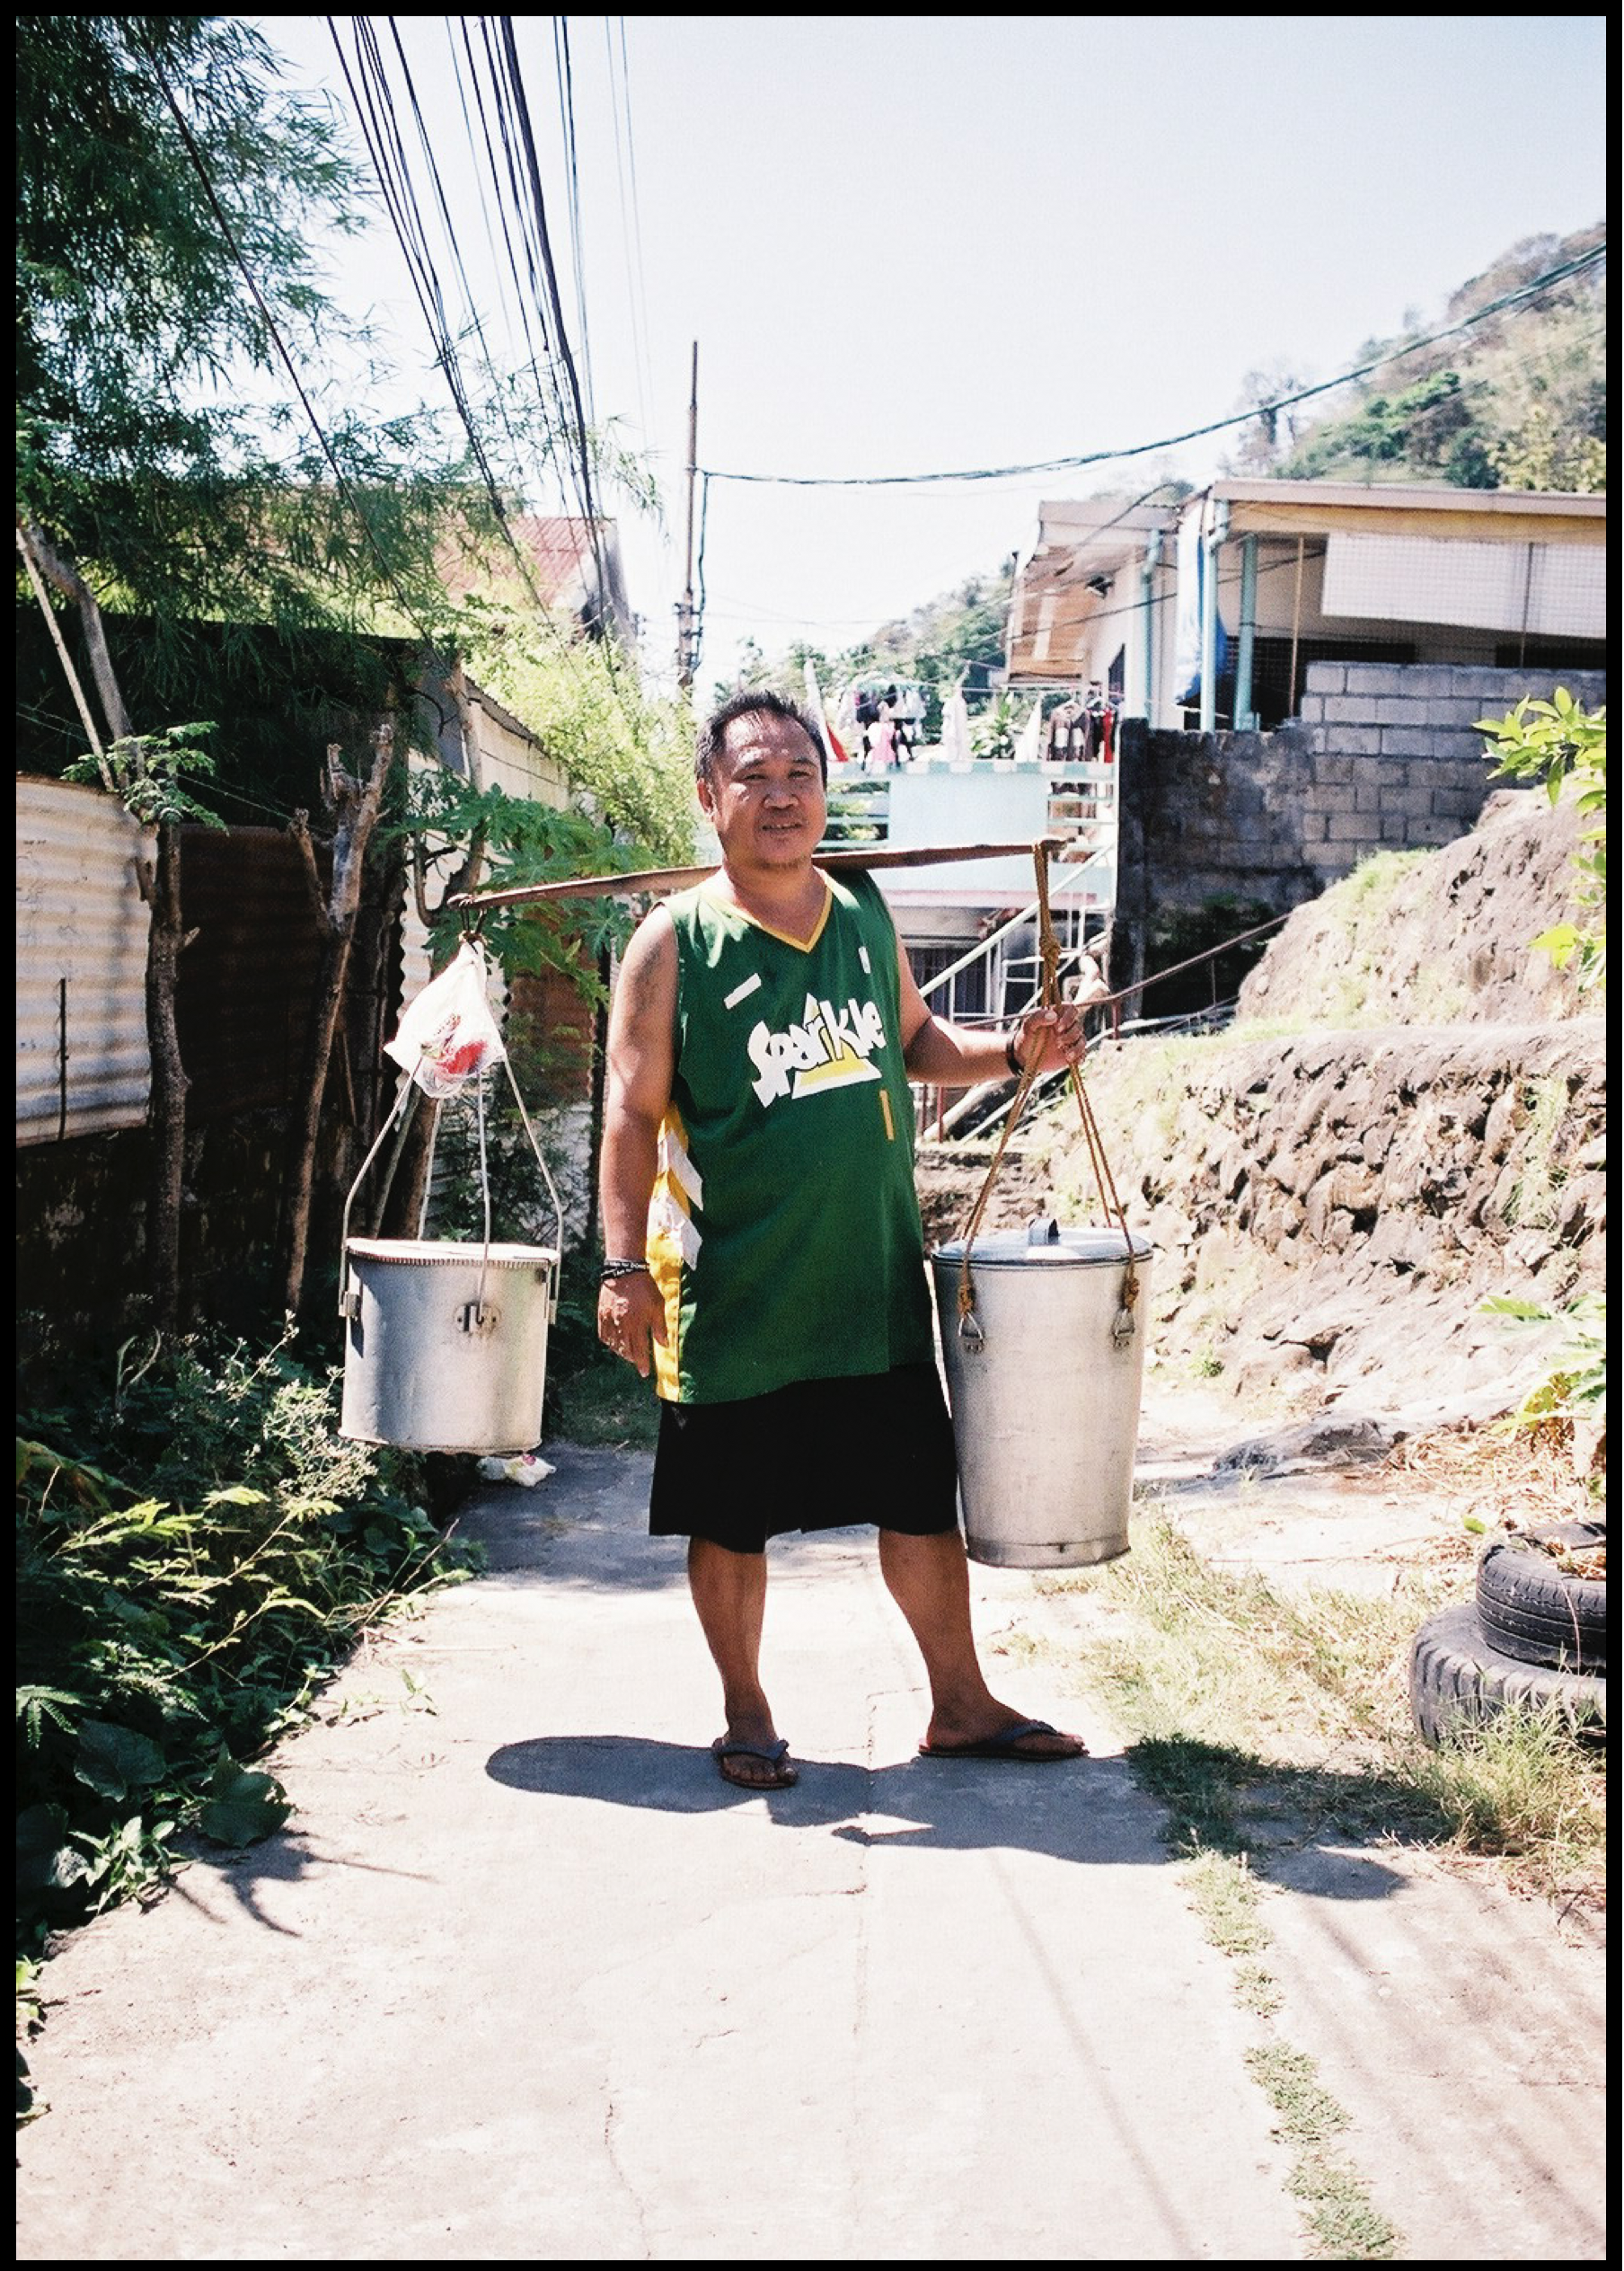 CoxCo_daily_life_Philippines 2019-08-04 14.16.21.png